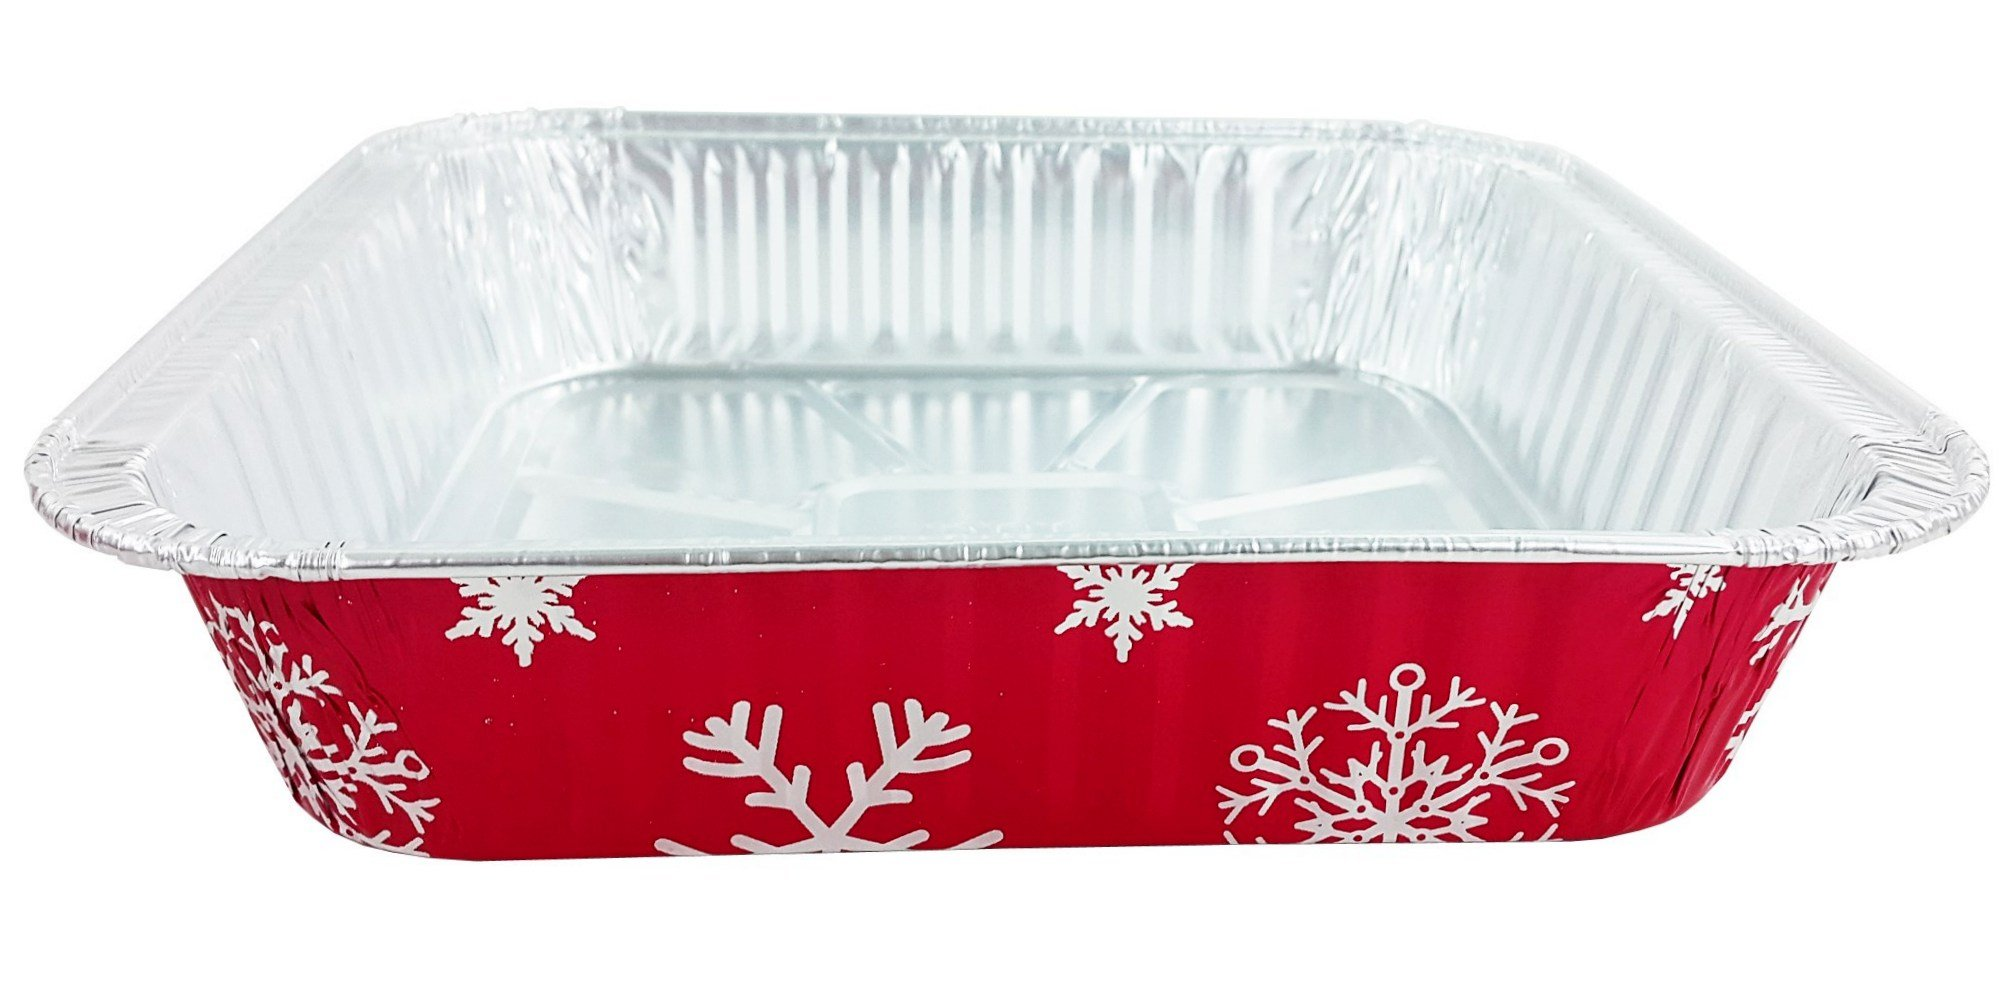 Pactogo Red Holiday Christmas Square Cake Aluminum Foil Pan w/Clear Dome Lid Disposable Baking Tins (Pack of 25 Sets) by PACTOGO (Image #9)